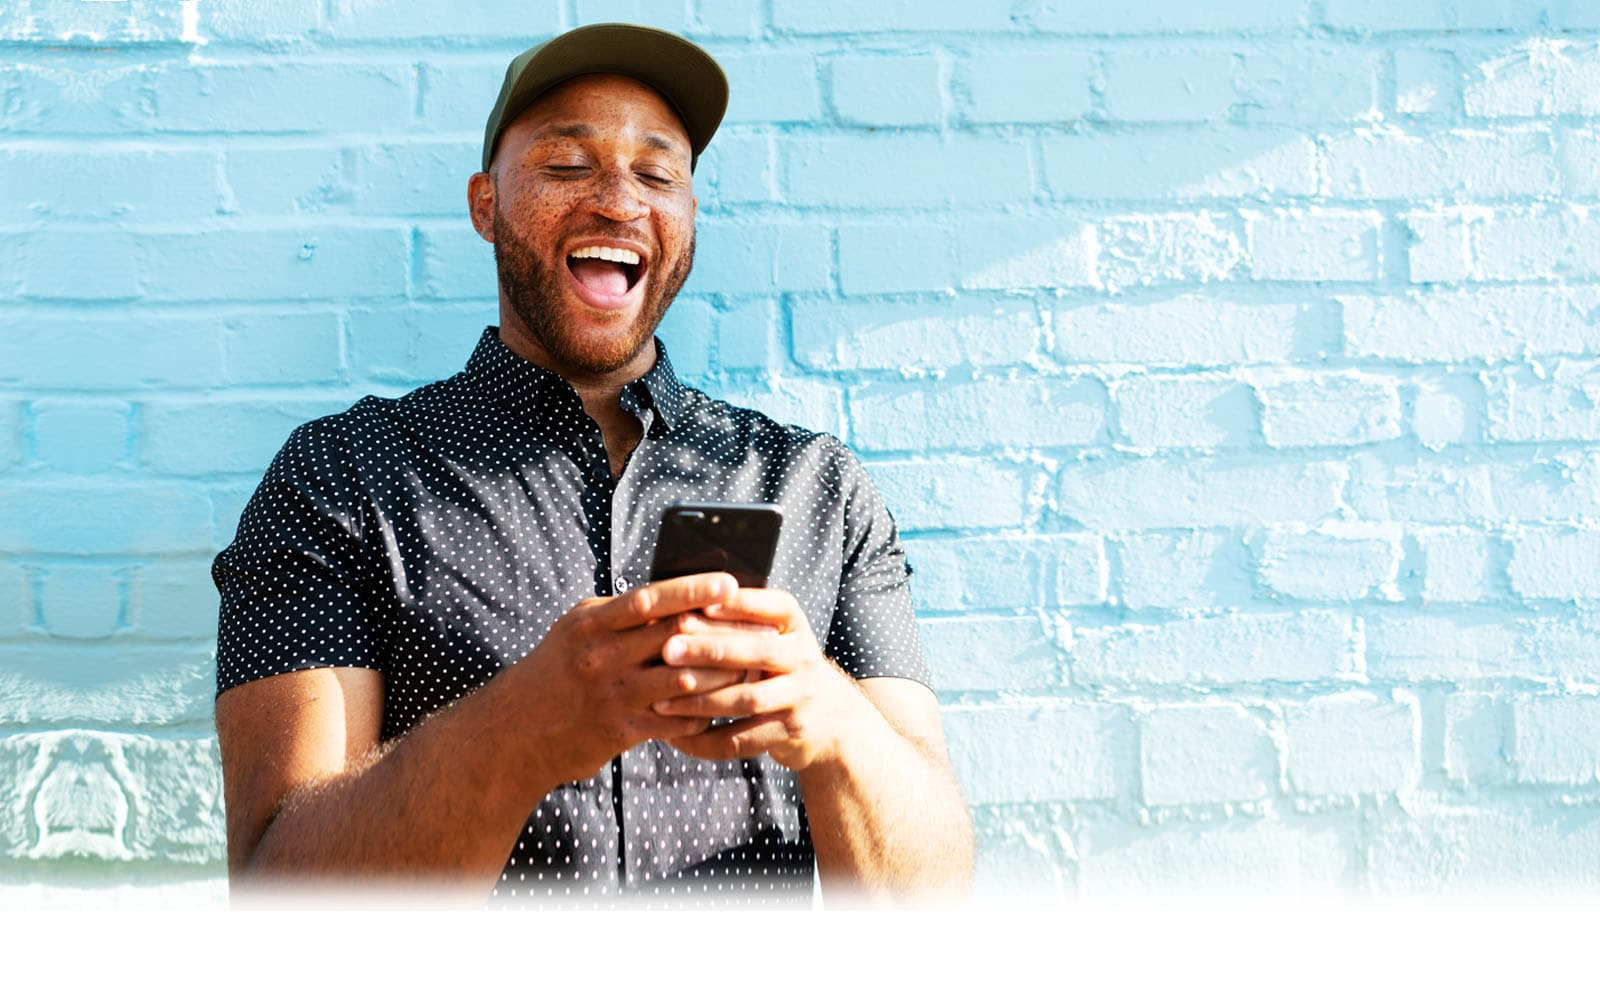 Man looking at phone and smiling against a blue brick wall